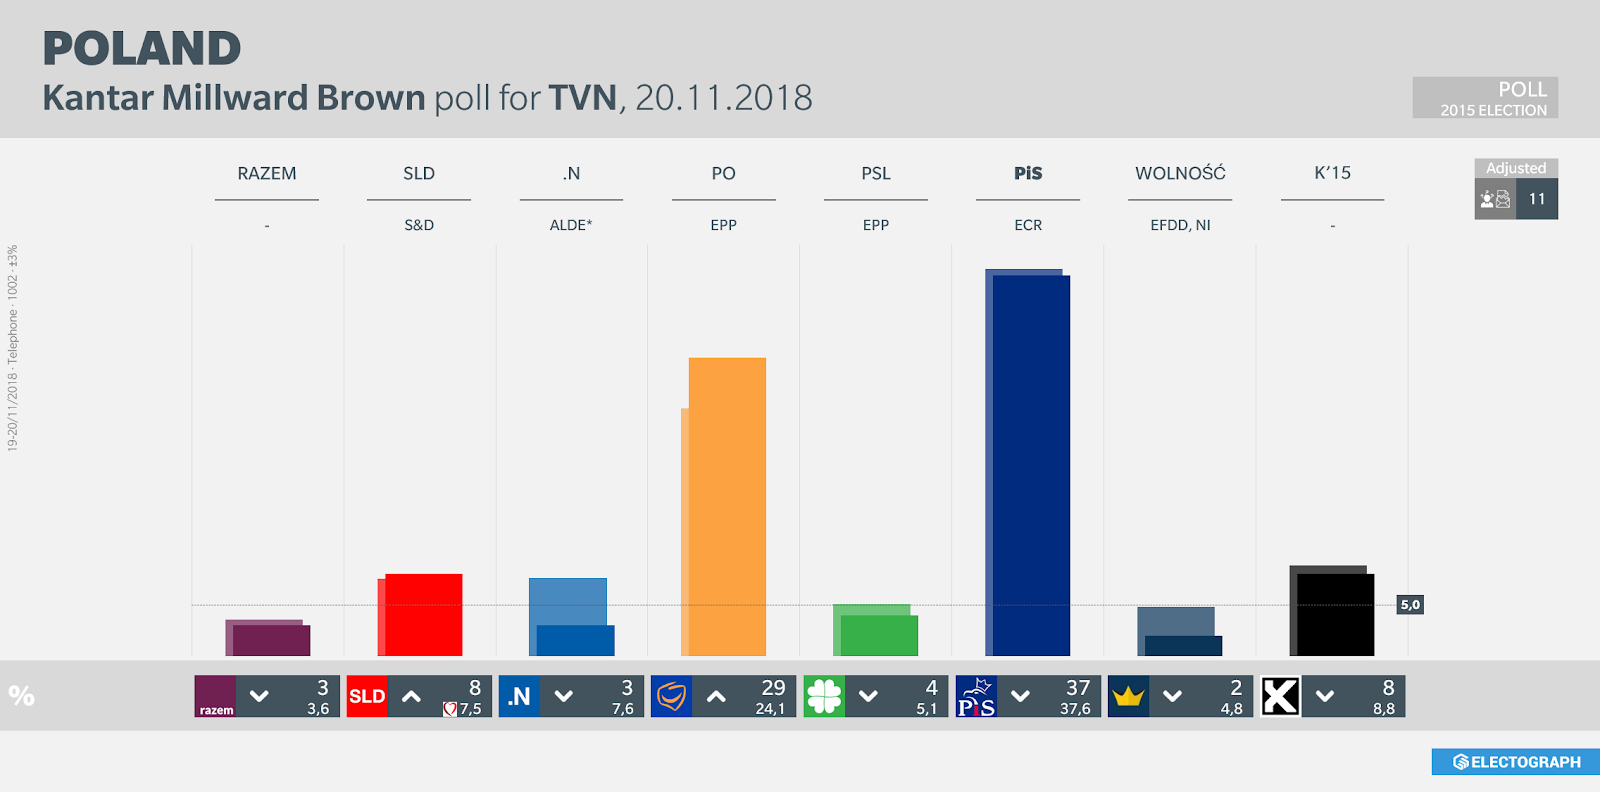 POLAND: Kantar Millward Brown poll chart for TVN, 20 November 2018